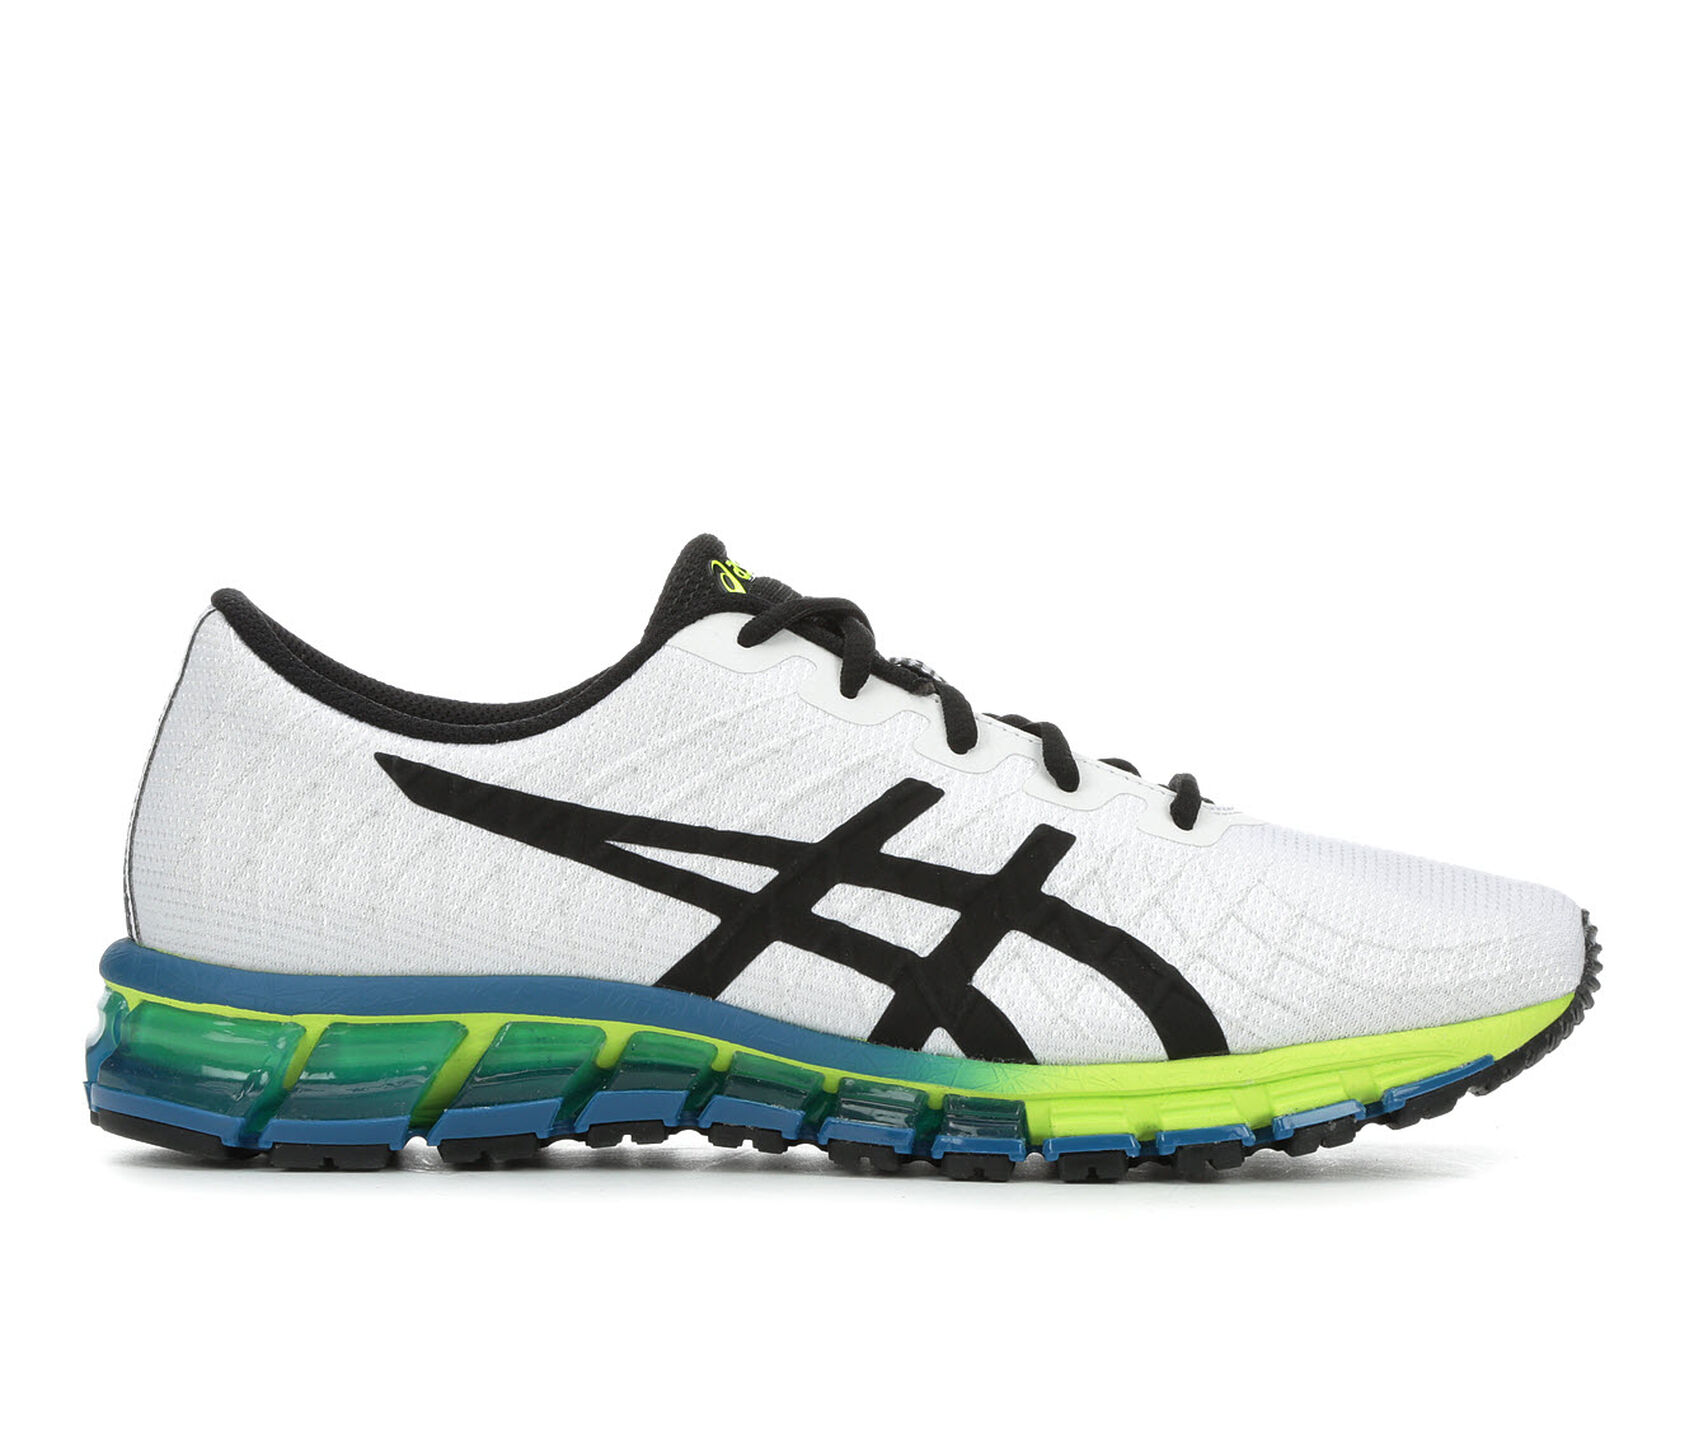 half off 296cb 79589 Men's ASICS Gel Quantum 180 4 - M Running Shoes